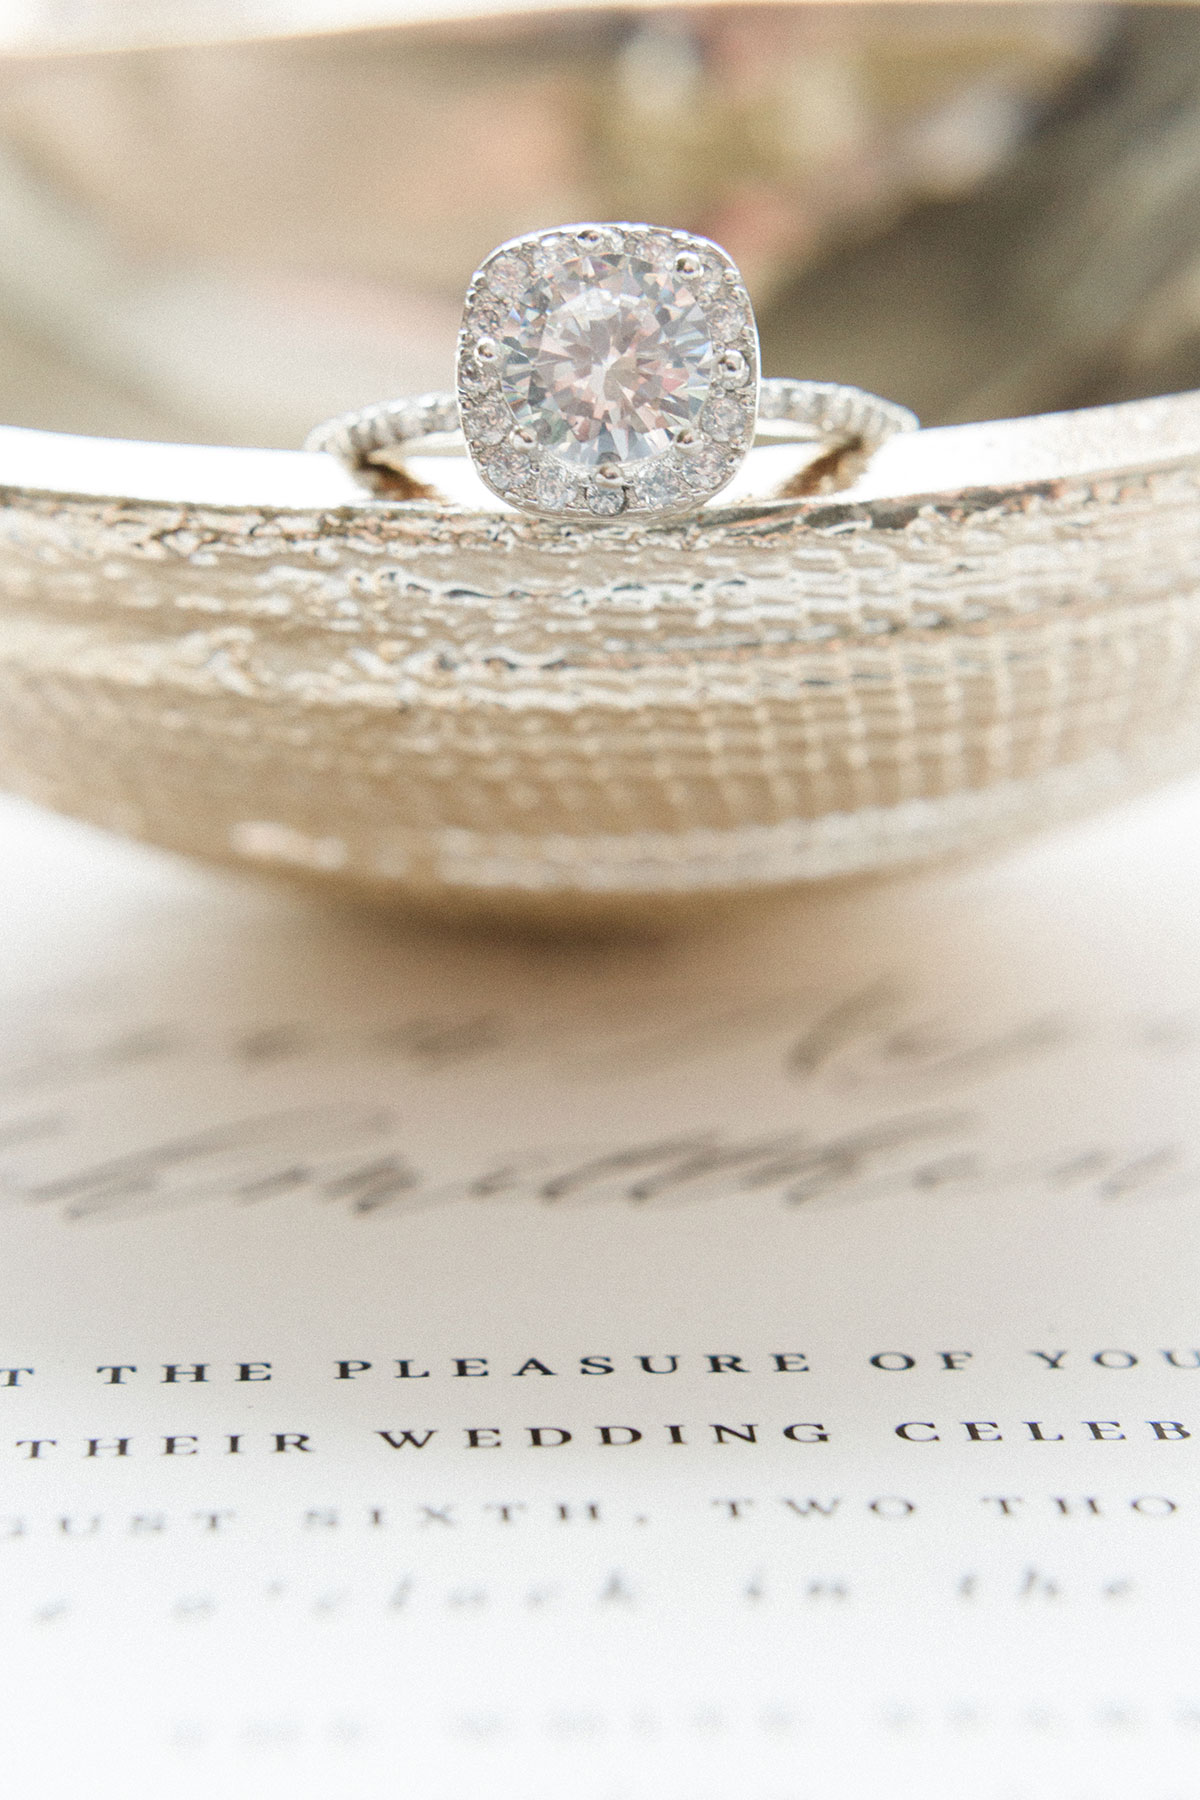 Styled_Shoot_Ring_Detail_Invitation_0959.jpg